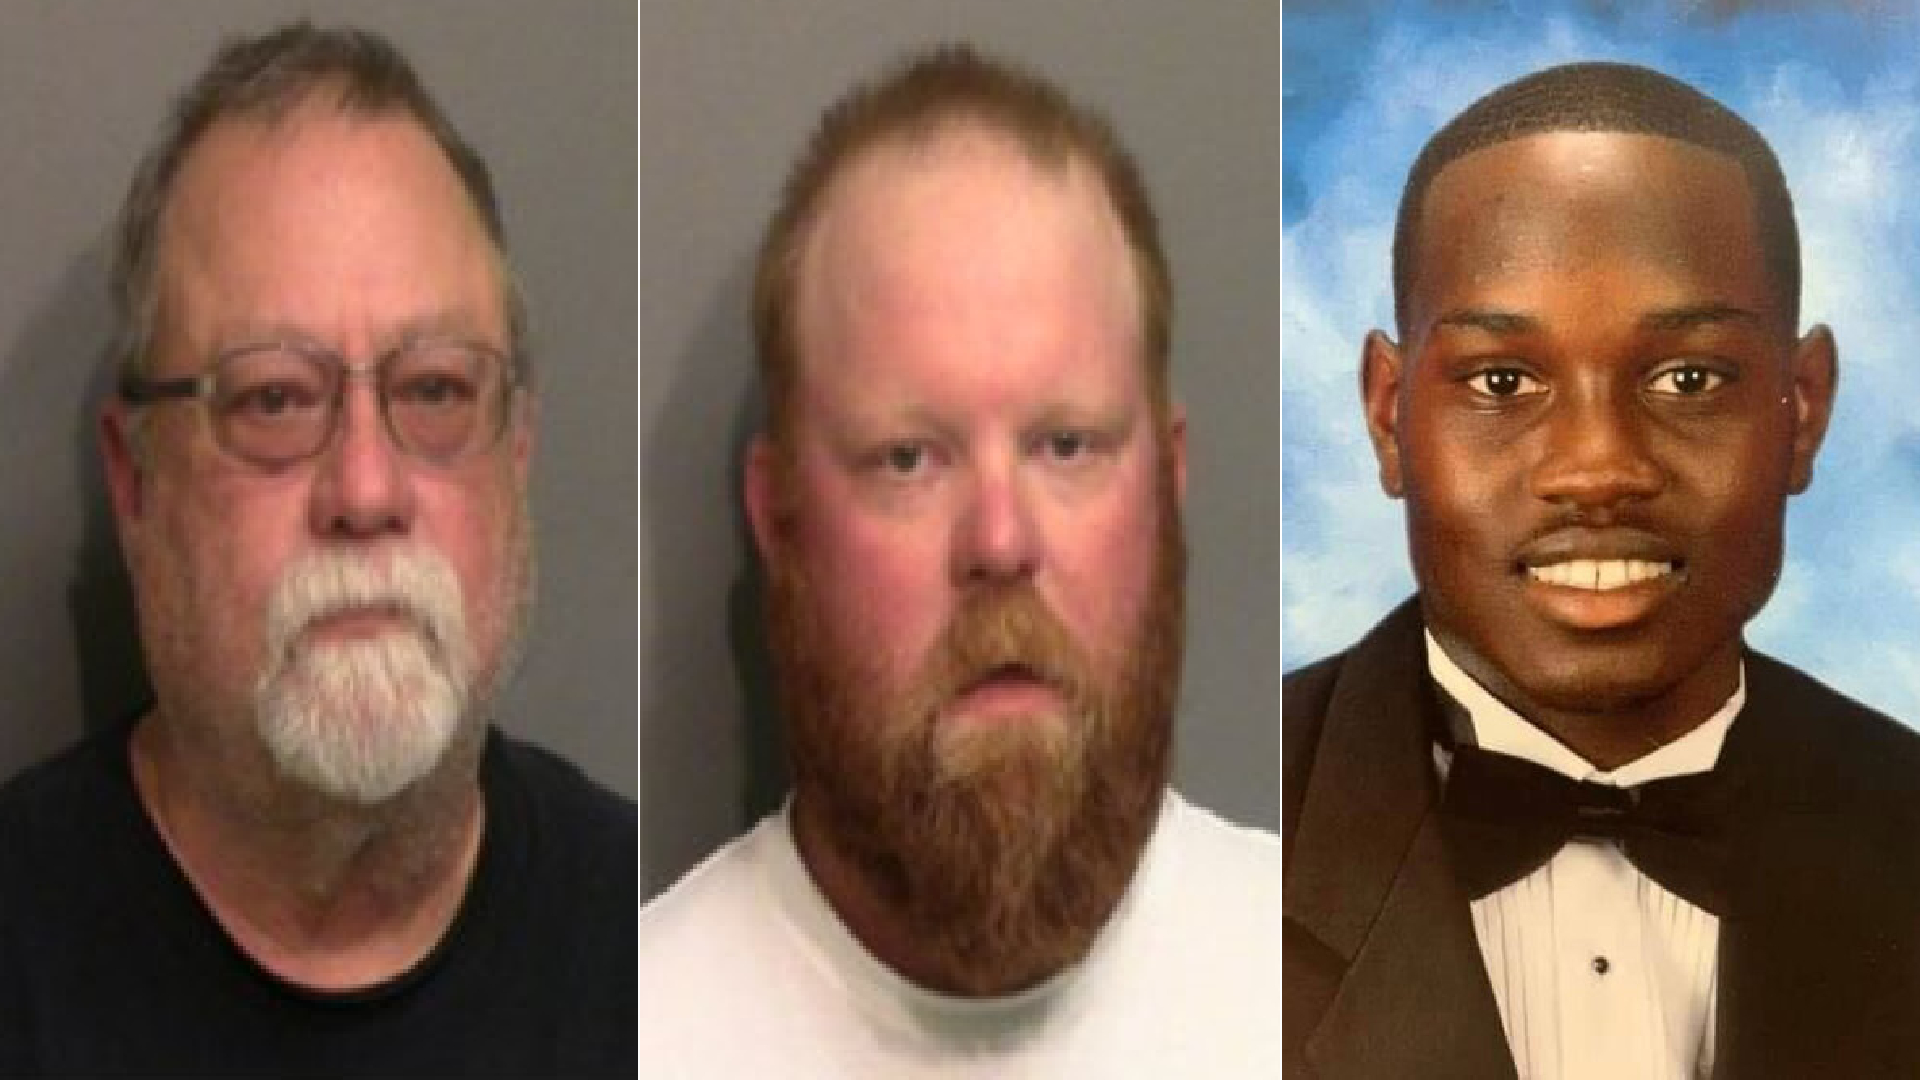 Gregory McMichael, left, and Travis McMichael, center, are seen in booking photos released May 7, 2020, by the Glynn County Sheriff's Office to WJXT and provided to CNN. Ahmaud Arbery, at right, is seen in an image posted to runwithmaud.com.